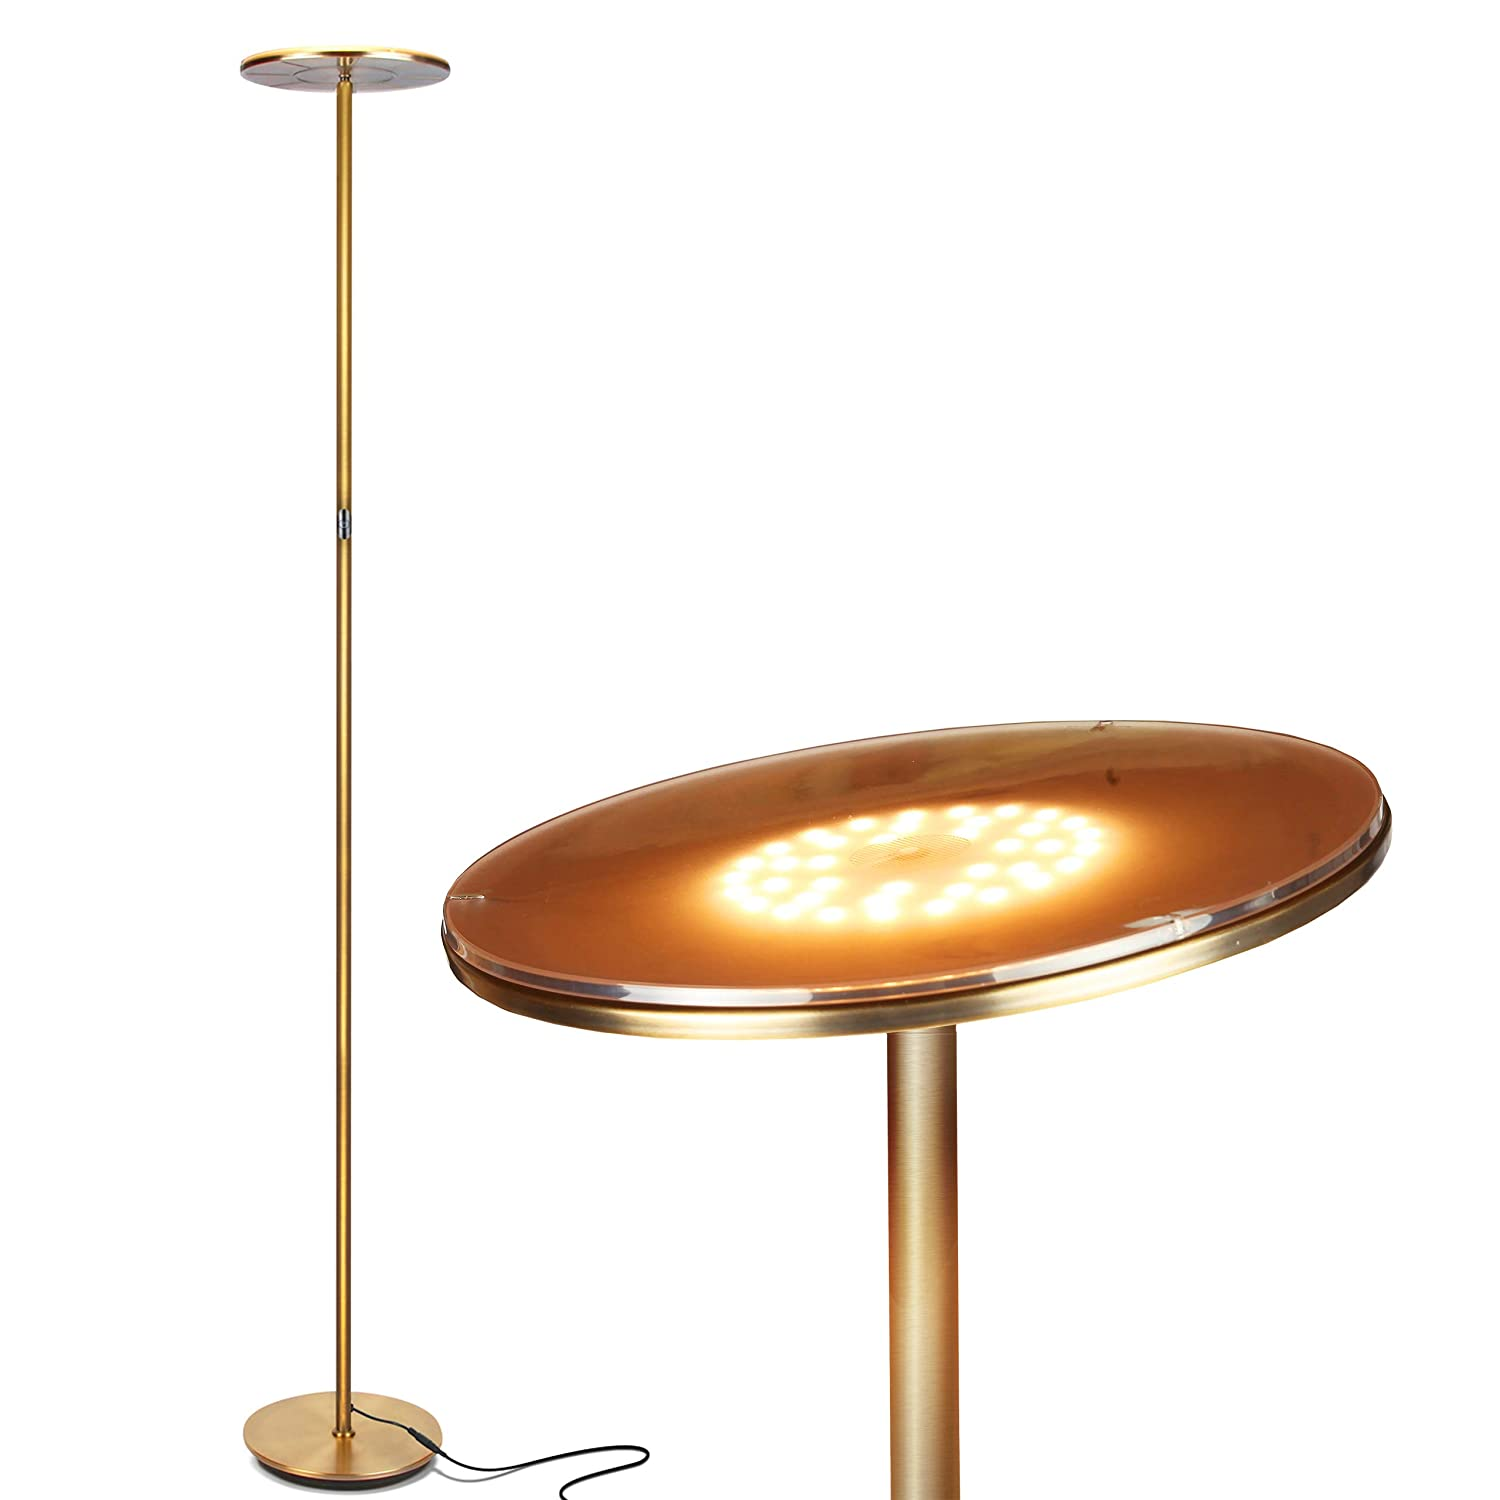 Brightech Sky Flux - Modern LED Torchiere Floor Lamp for Living Rooms & Bedrooms - Adjustable Warm to Cool White - Tall Pole, Standing Office Light - Bright, Minimalist & Contemporary Uplight - Brass